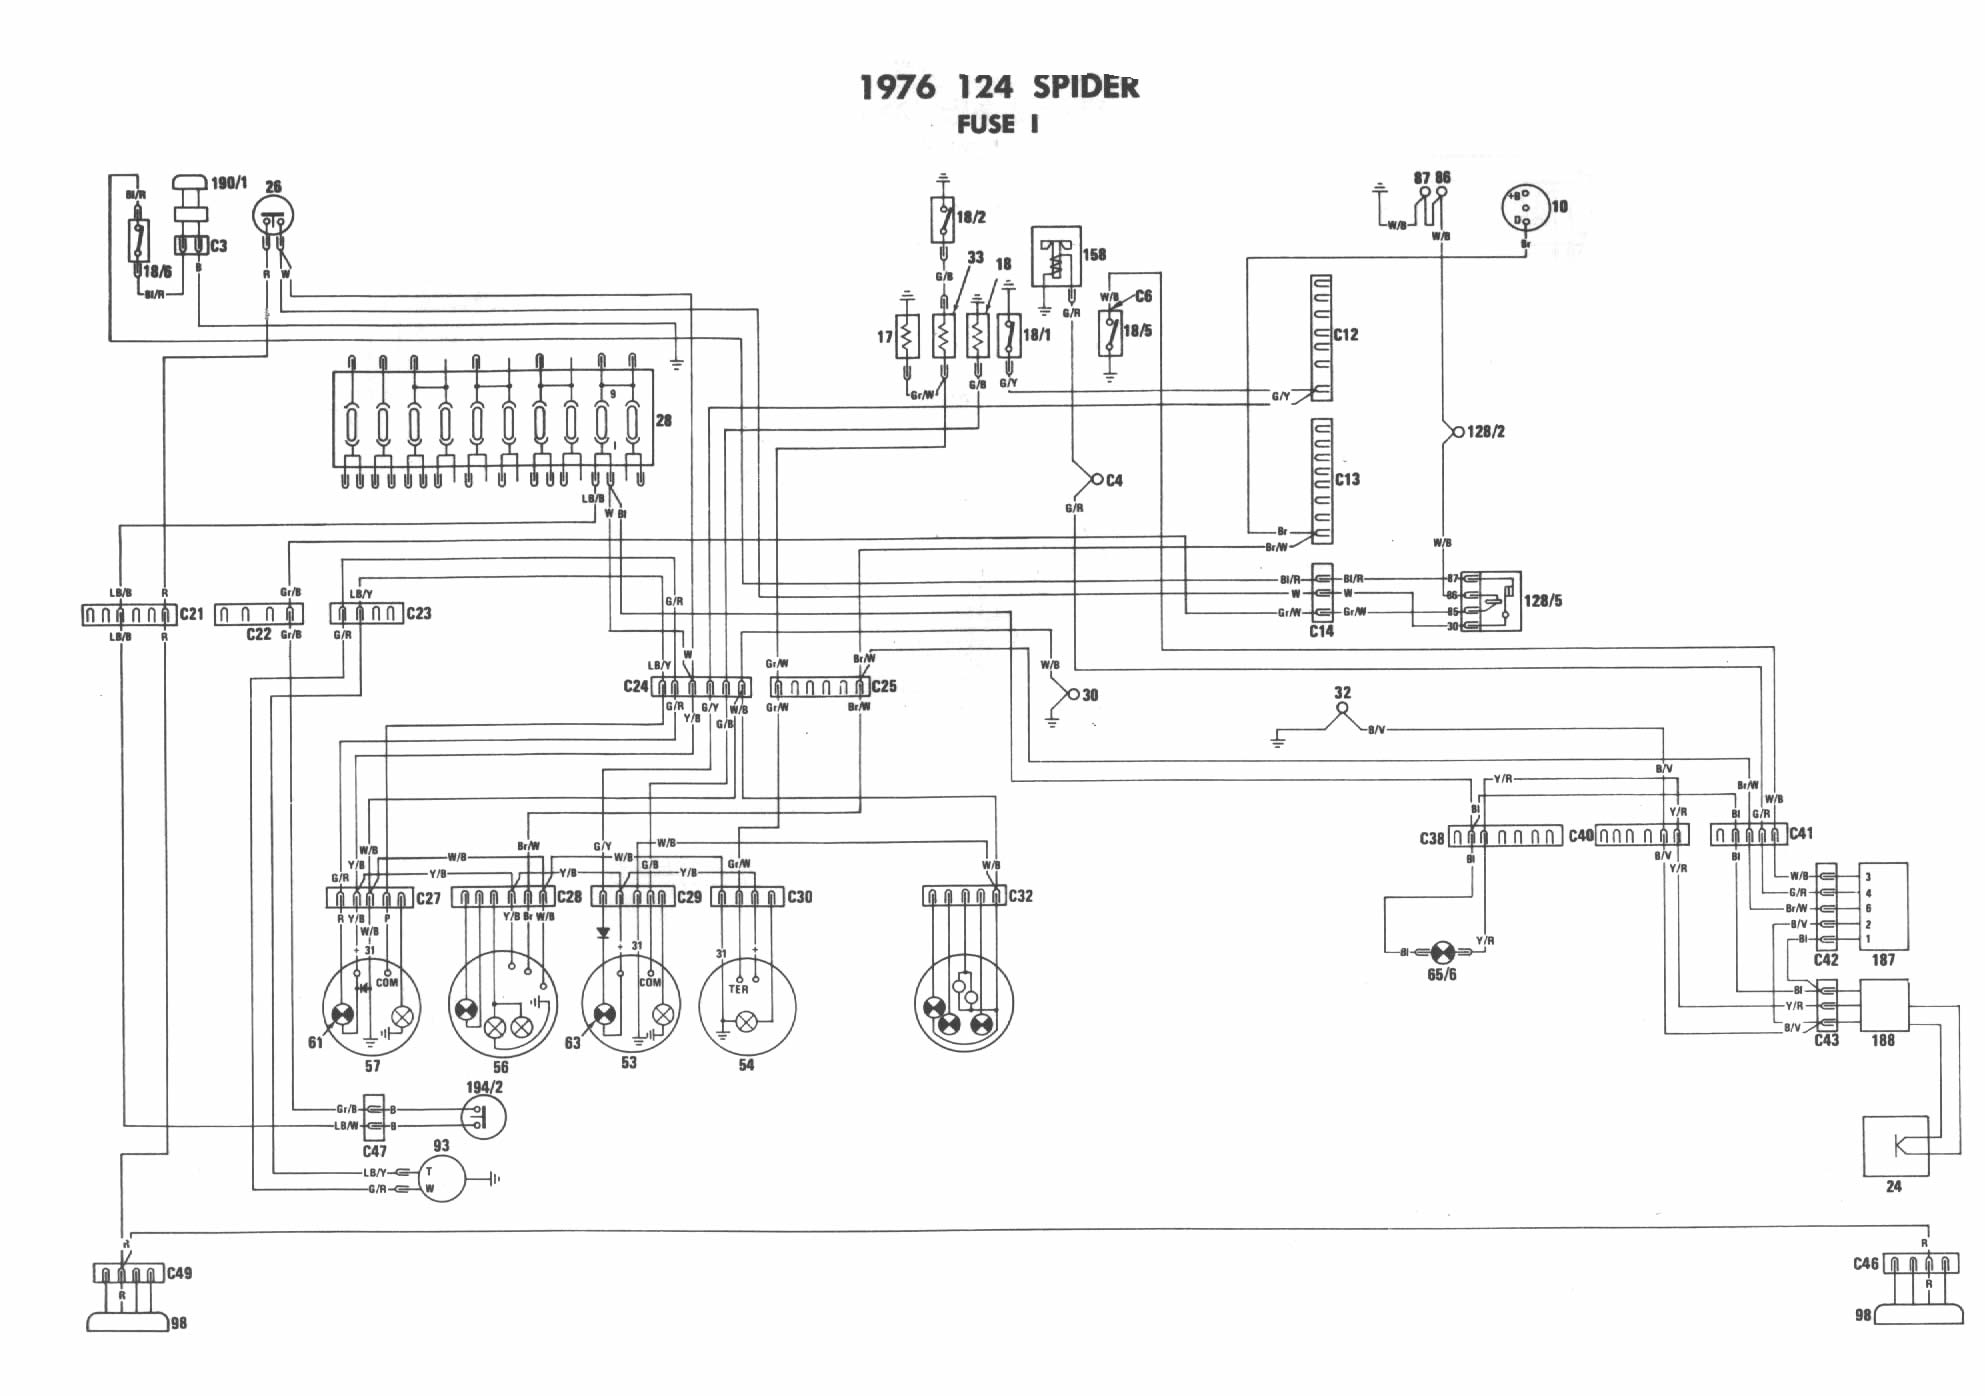 1976_7 1976 fiat spider wiring diagrams Electrical Wiring Diagrams at eliteediting.co